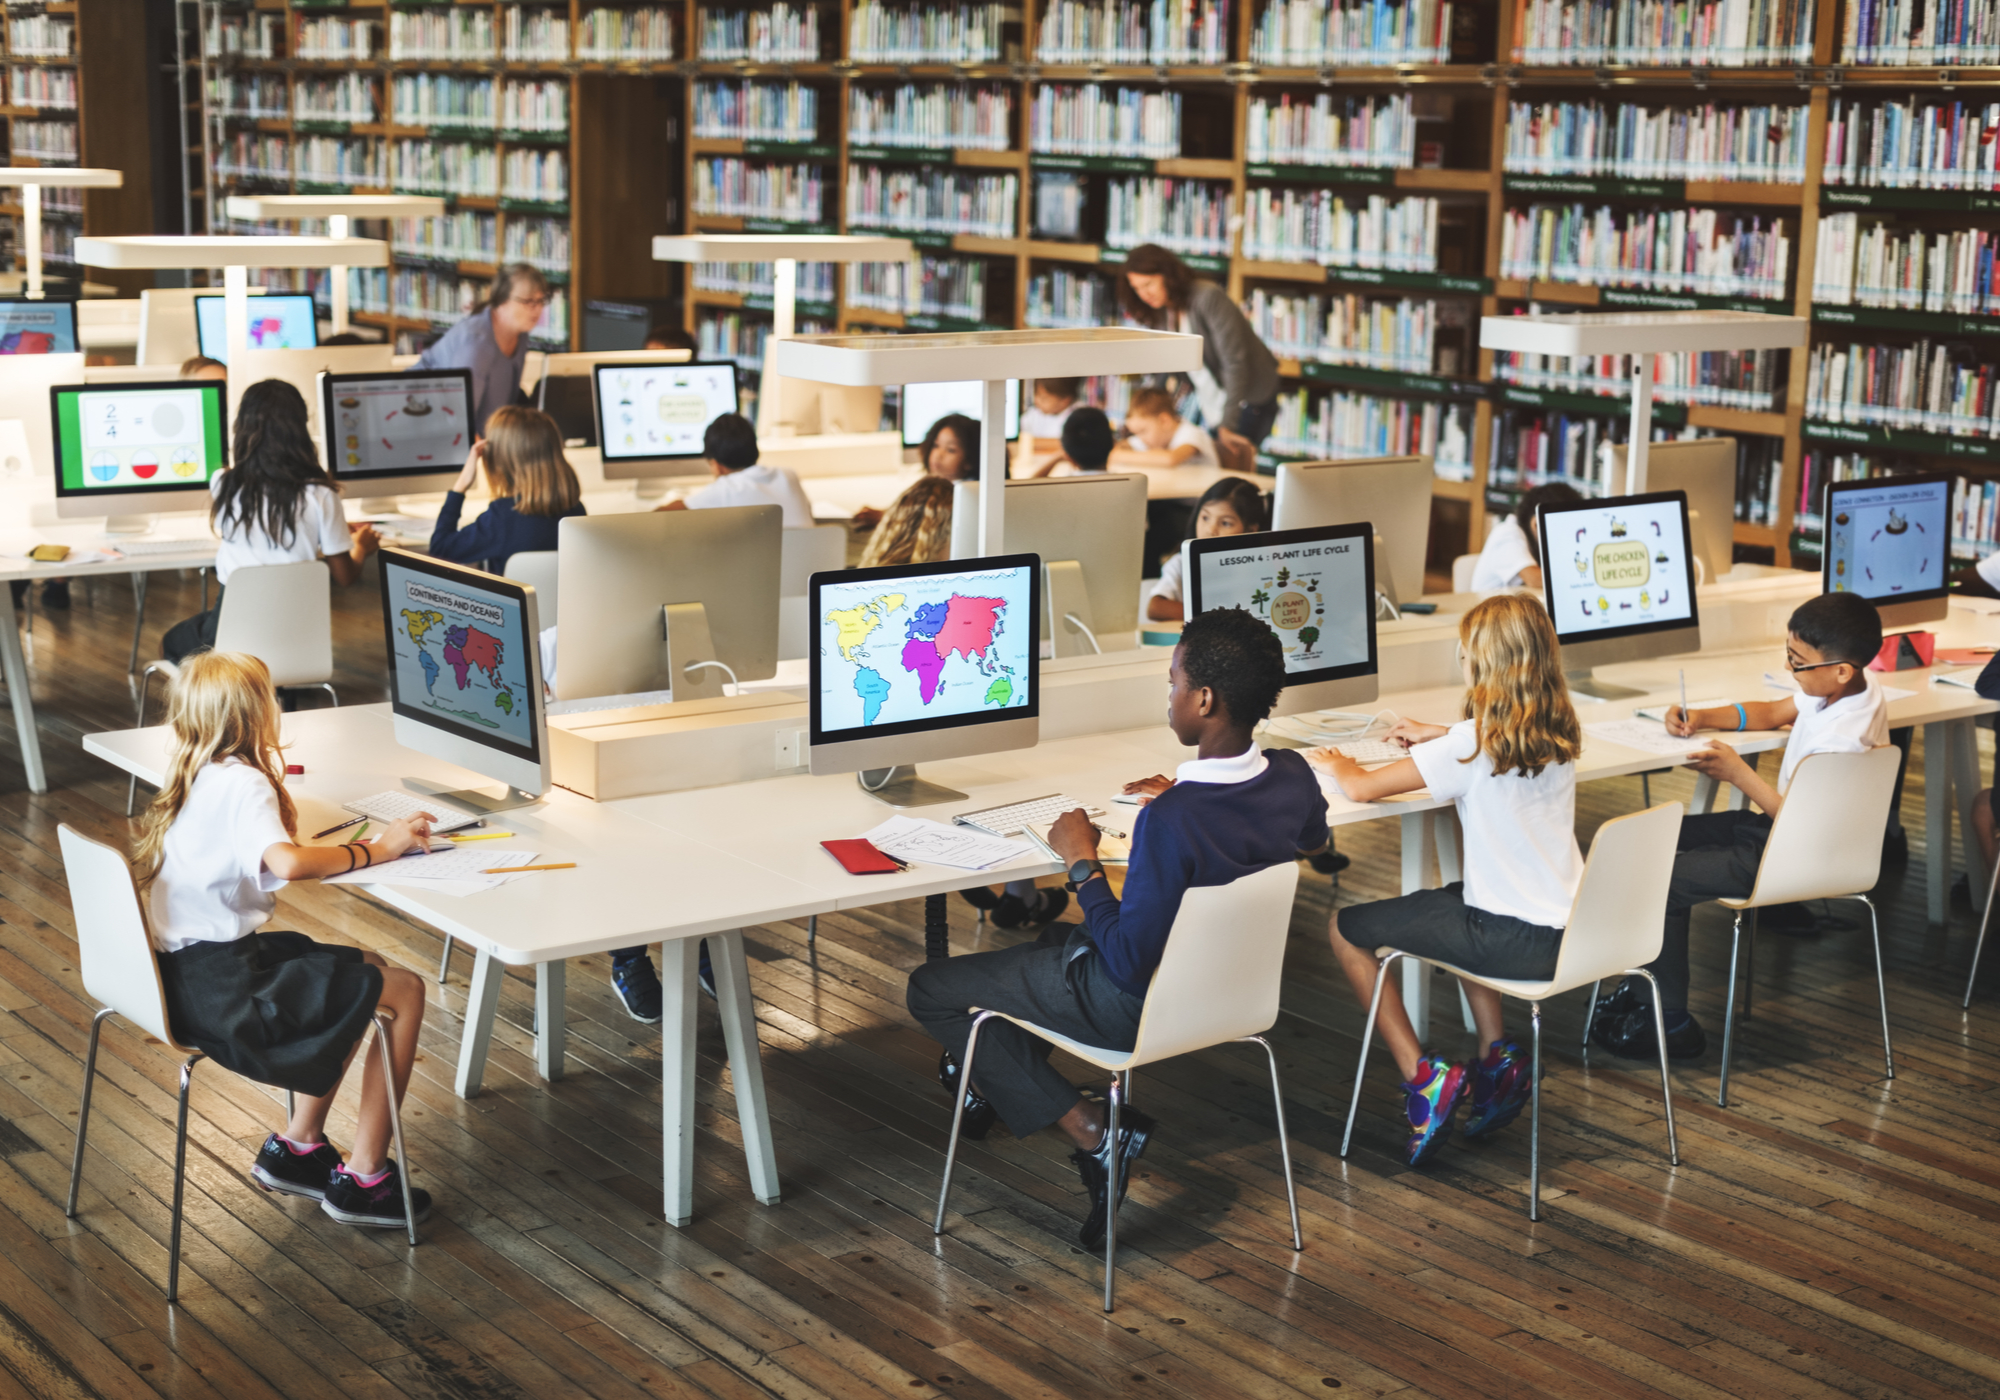 NCSC warns of cyberattacks against schools after ransomware spike